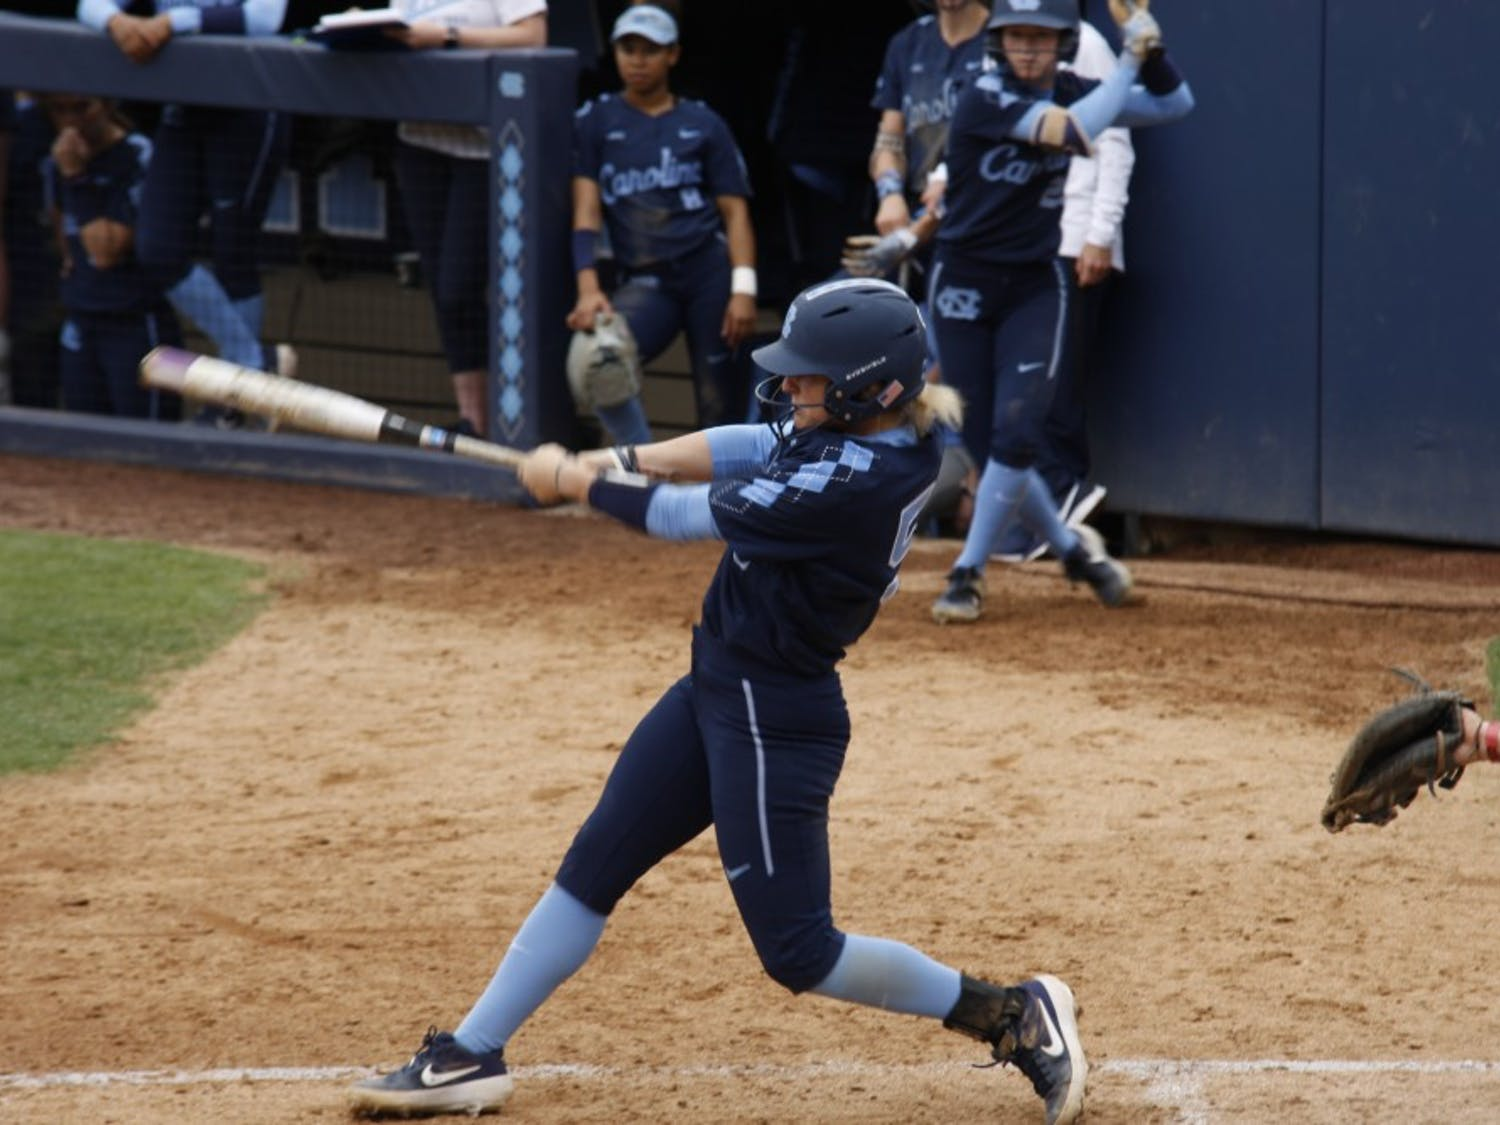 Junior first baseman Campbell Hutcherson (5) crushing the ball during UNC's win against Virginia on Saturday, Apr. 6, 2019.